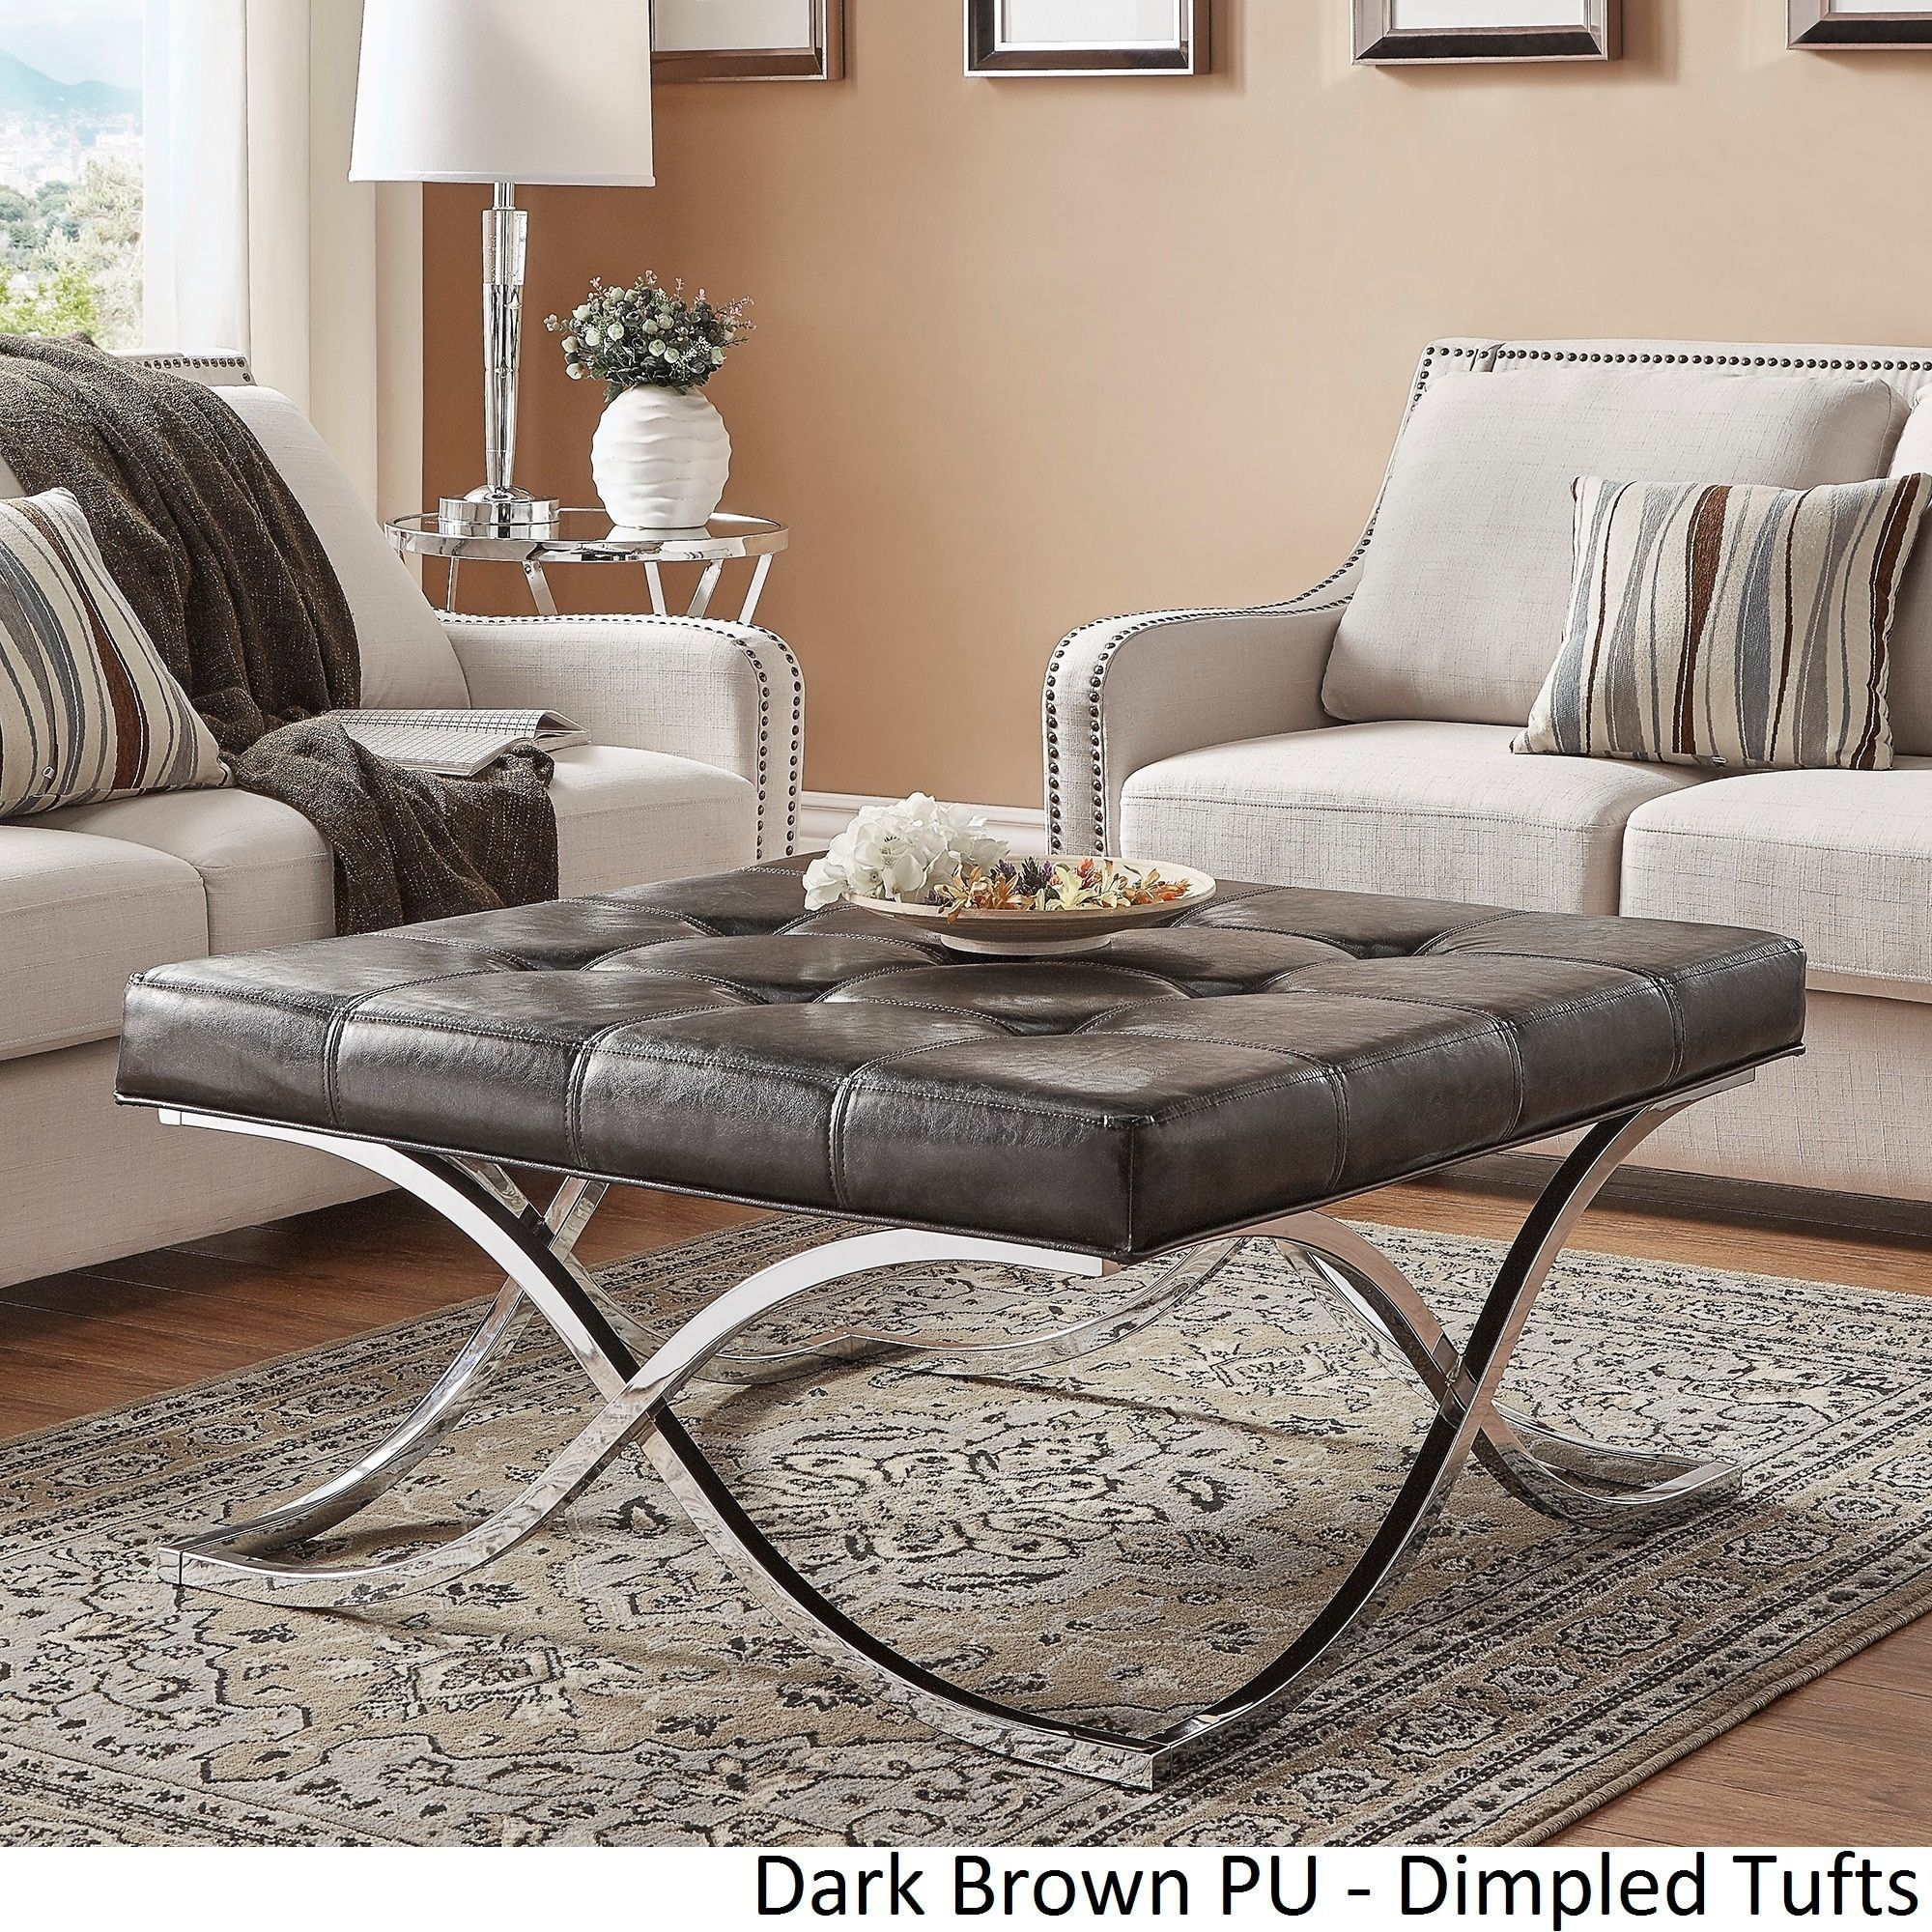 Solene X Base Square Ottoman Coffee Table - Chrome by Inspire Q ([Dark  Brown PU]- Dimpled Tufts)